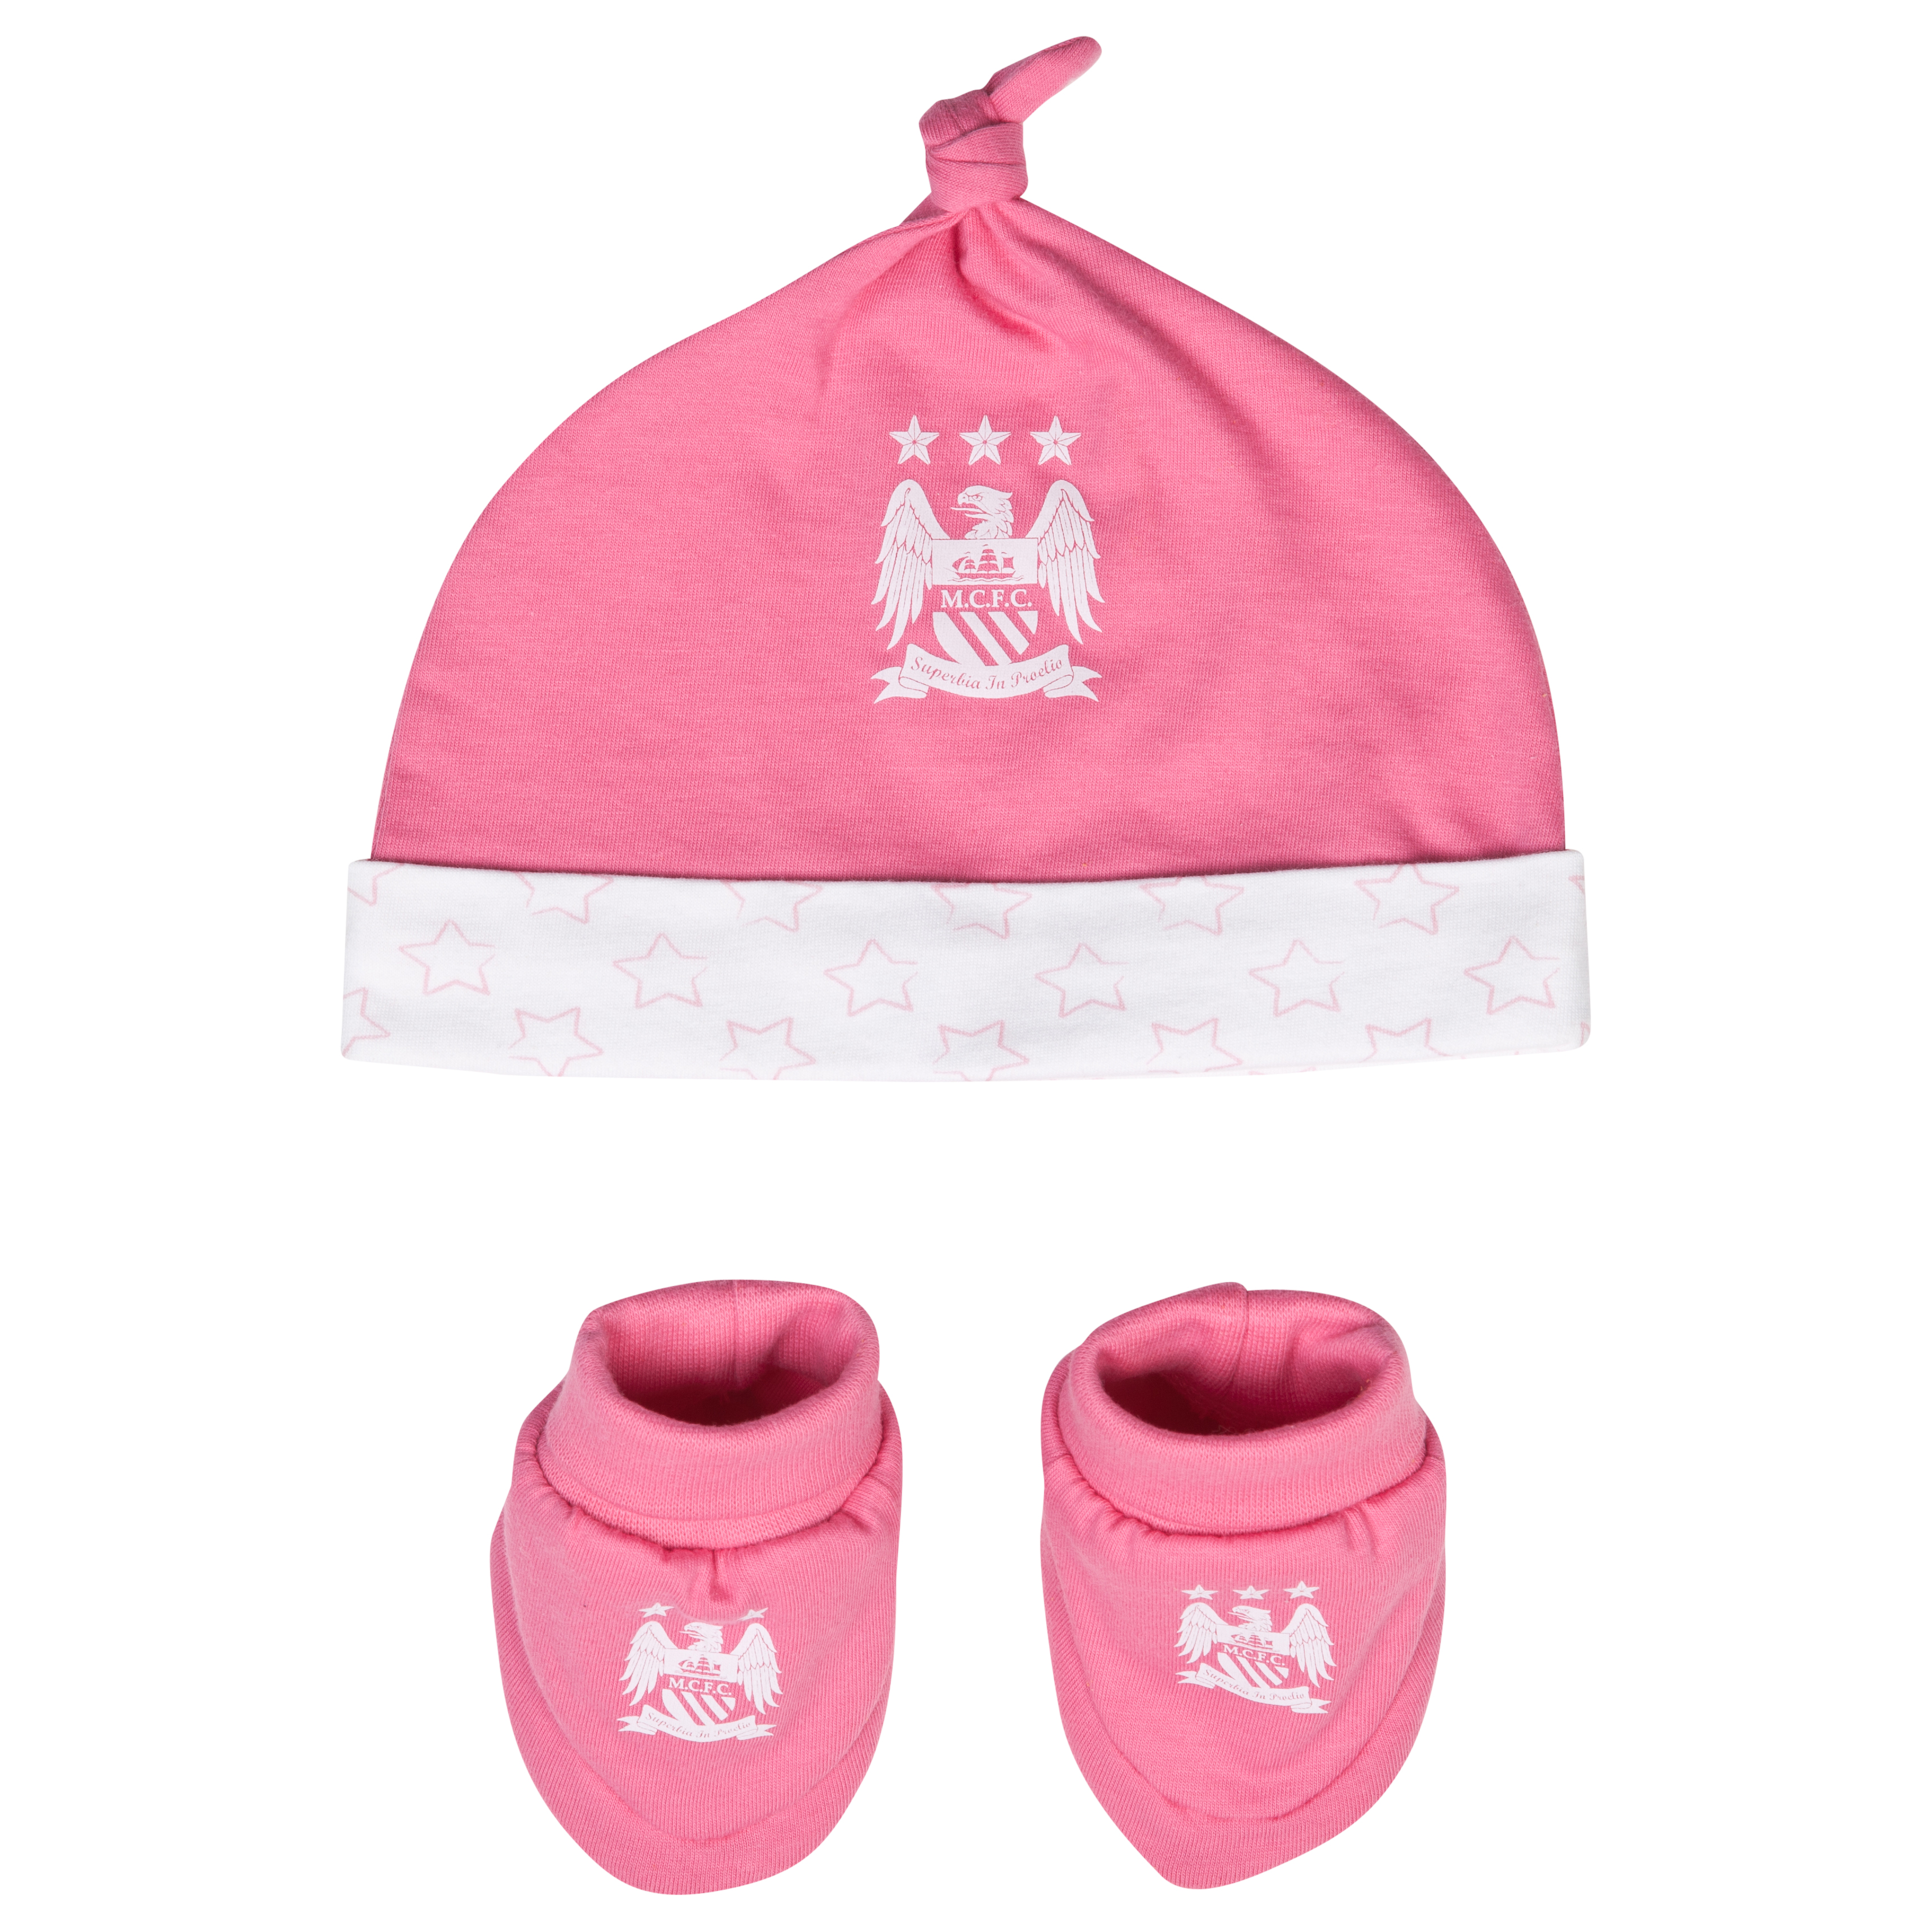 Manchester City Stars Hat and Booties - Pink/White - Baby